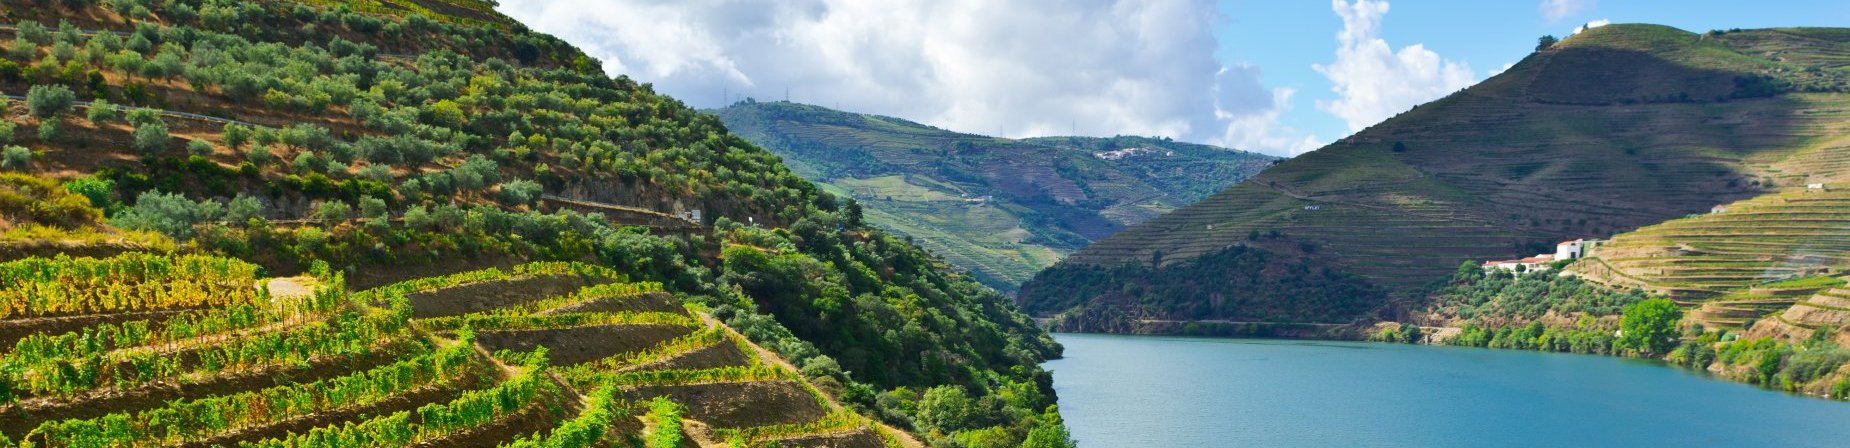 Douro Valley Wine Tours » One of the most beautiful wine regions in ...